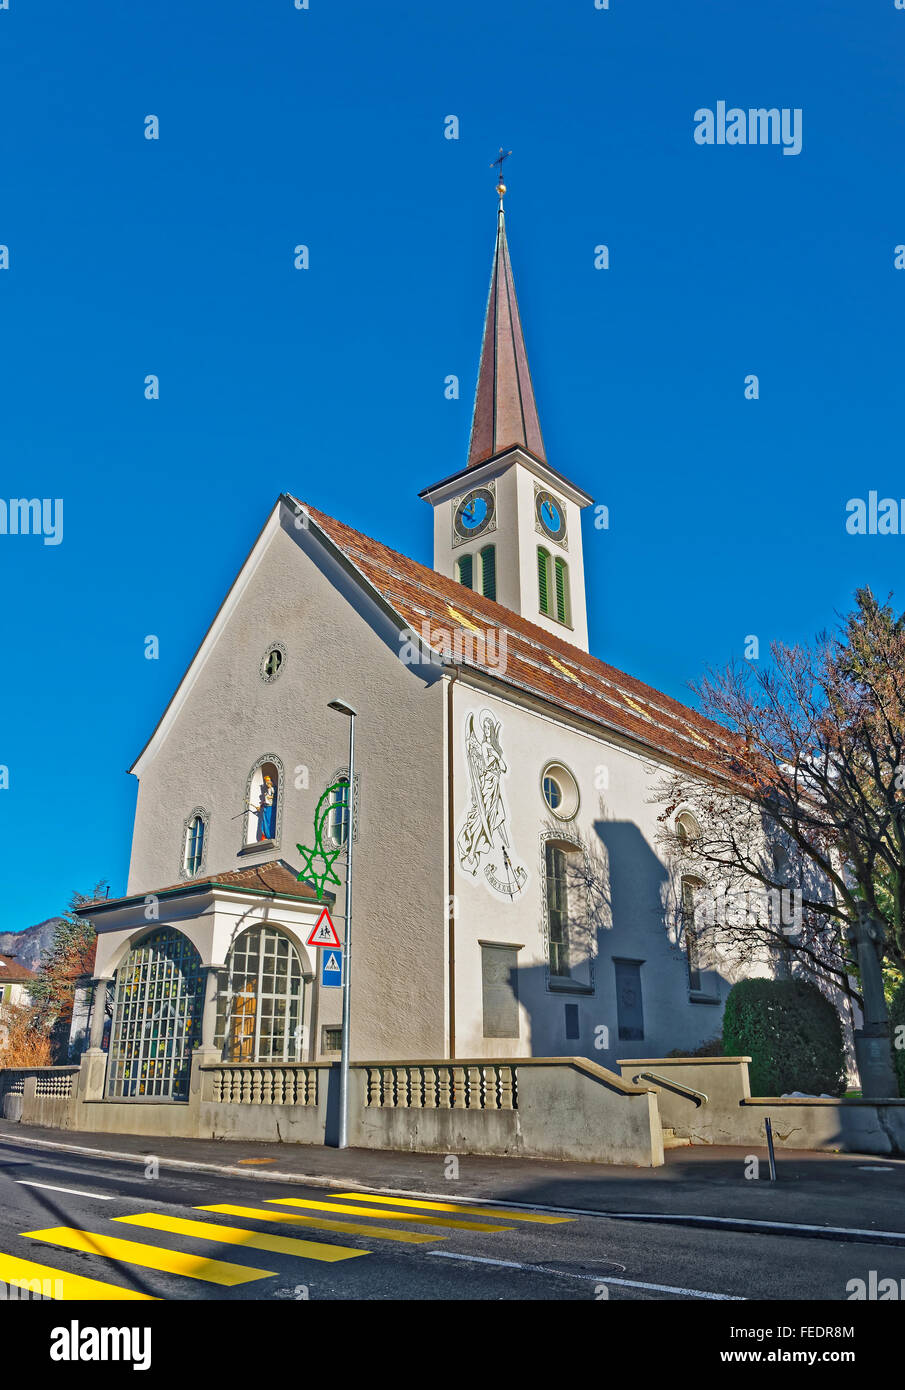 Catholic Church in Bad Ragaz. Bad Ragaz is a city in ...